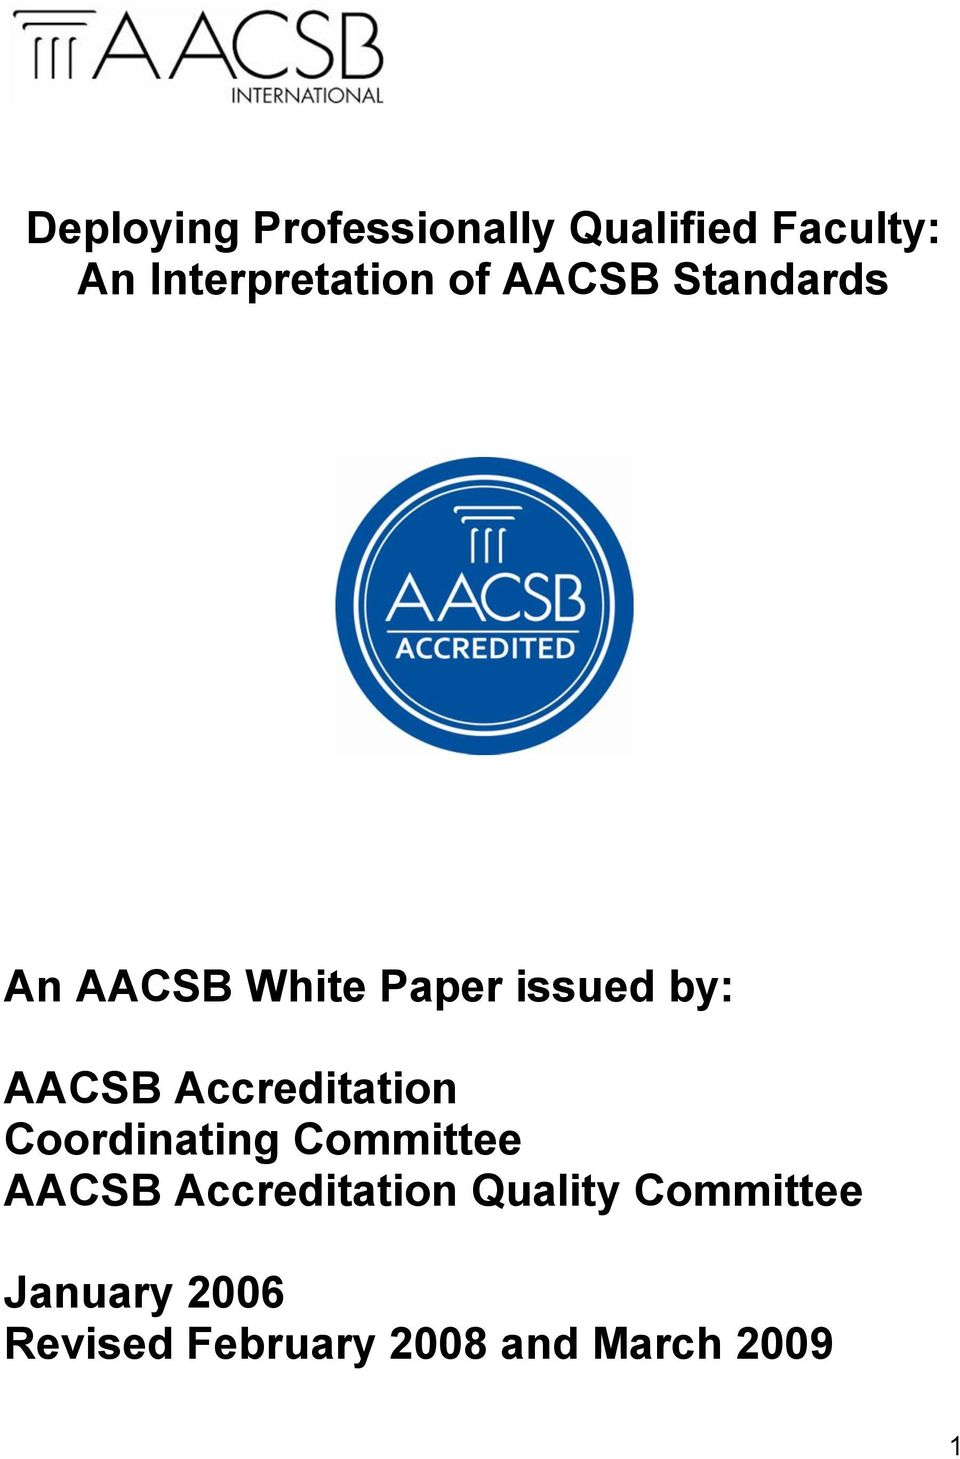 Accreditation Coordinating Committee AACSB Accreditation